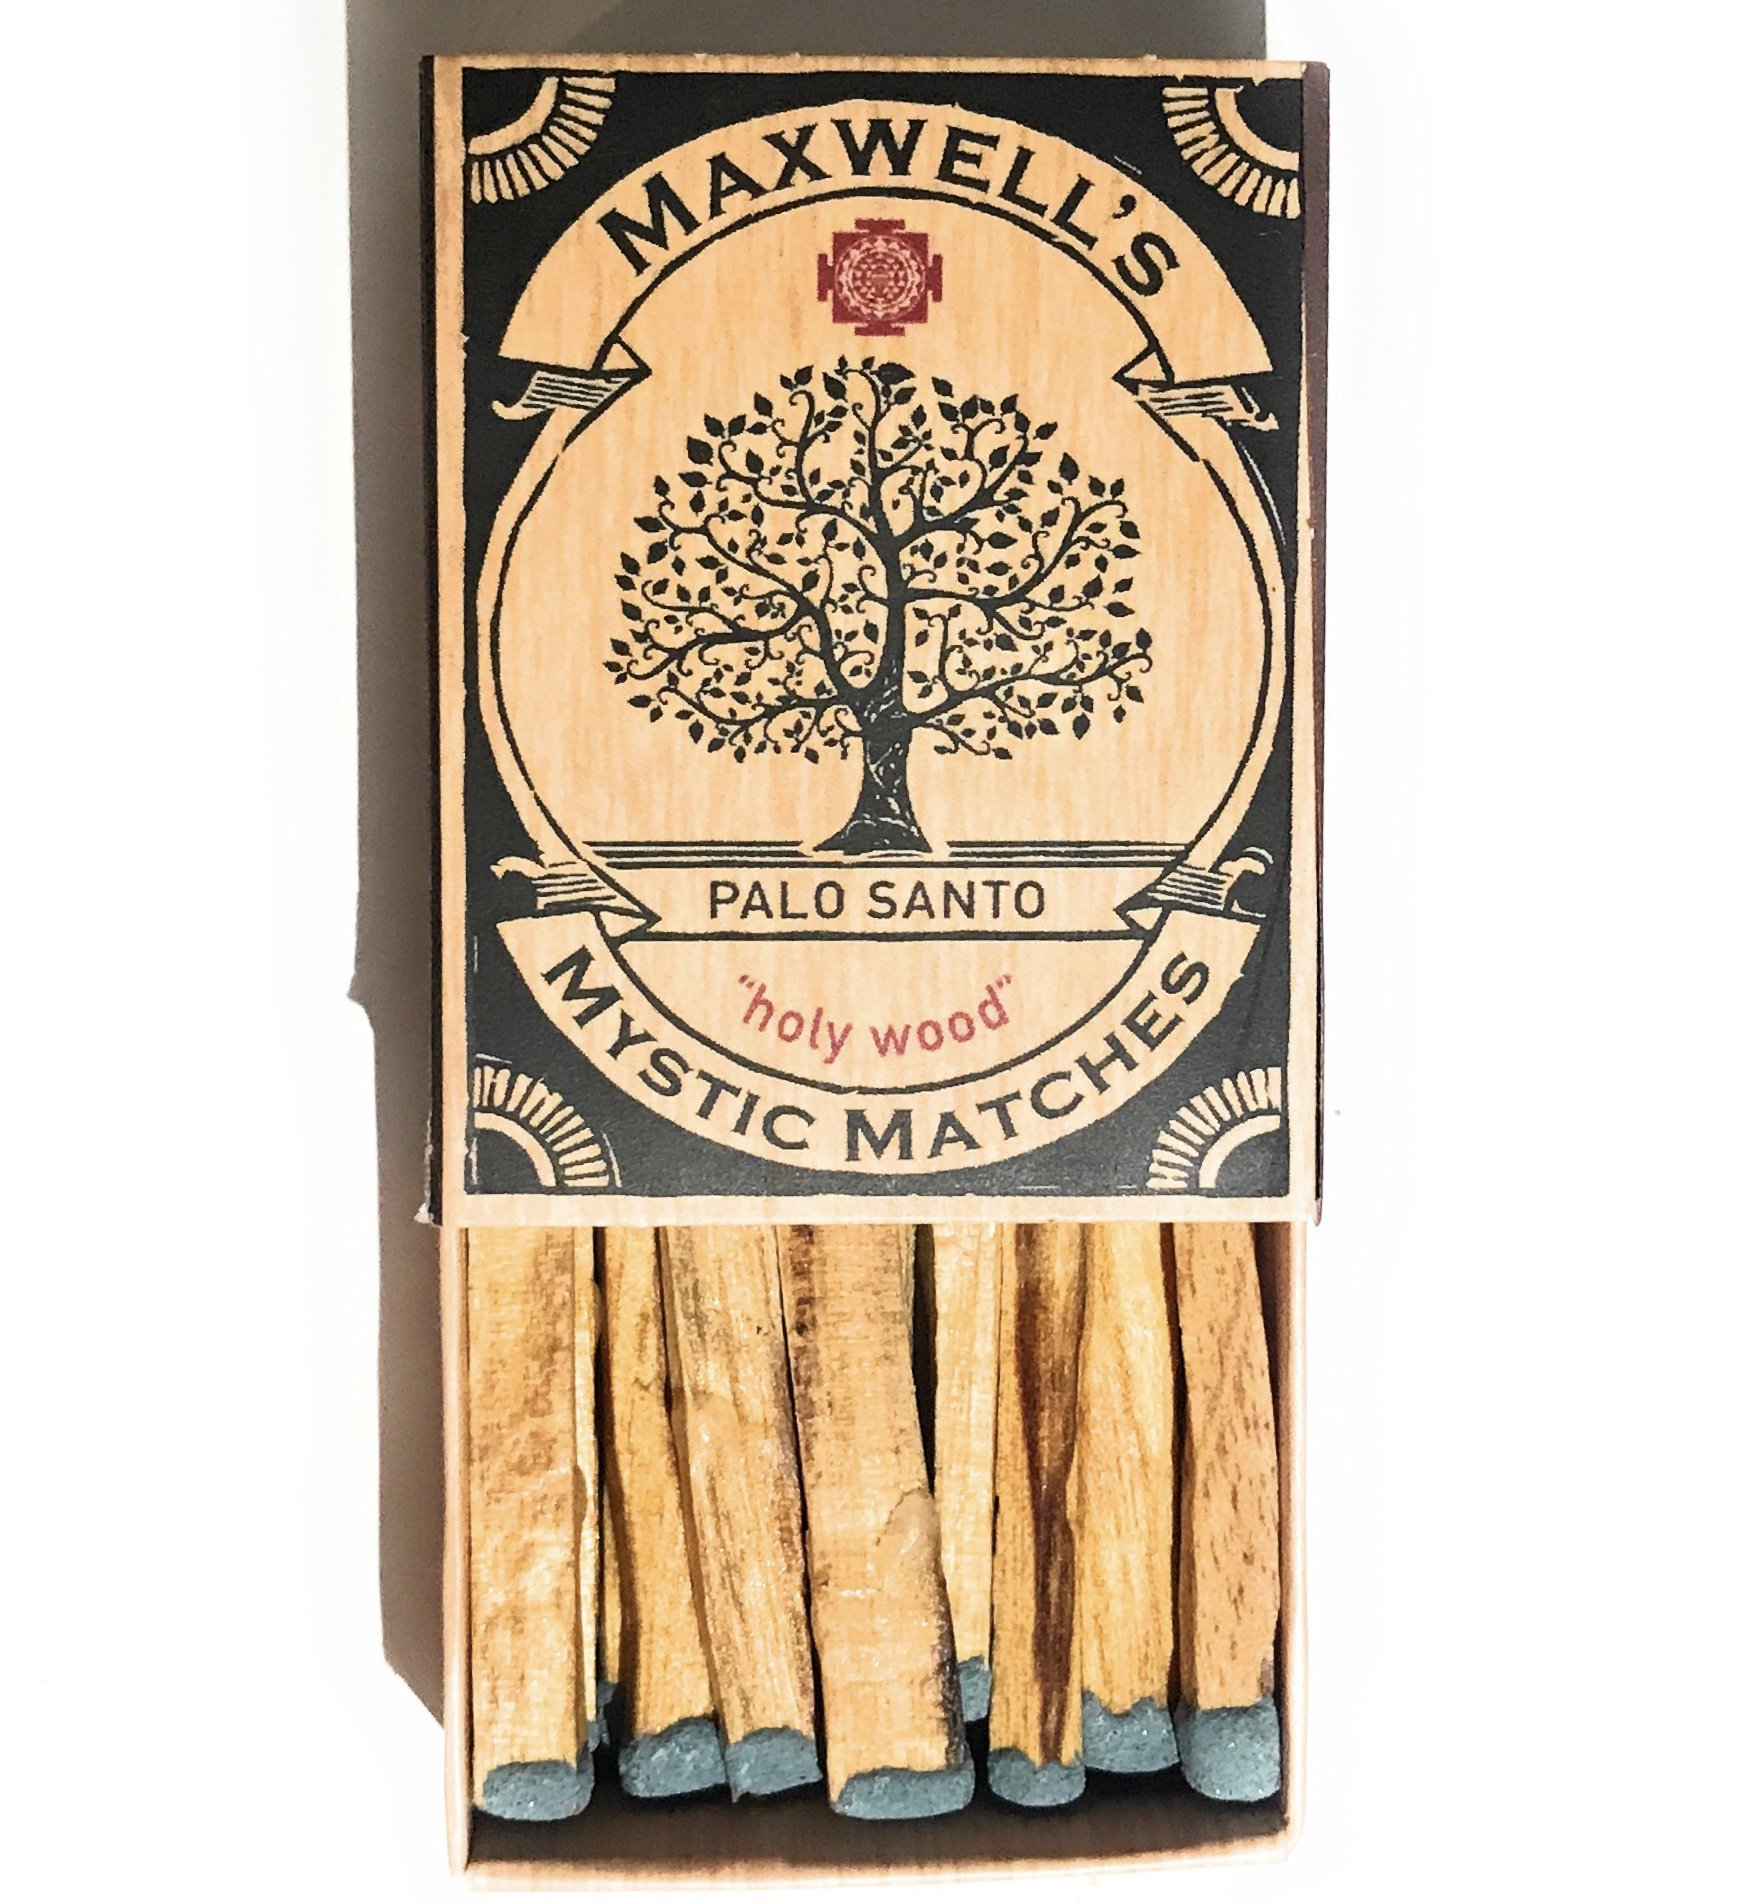 6 pack Palo Santo Incense Match Sticks | Peruvian ''Holy Wood'' Large Palo Santo Wood Sticks ● Smudging, Energy Clearing, Stress Relief, Relaxation, Healing, Meditation from Peru by Maxwell's Mystic Matches (Image #5)